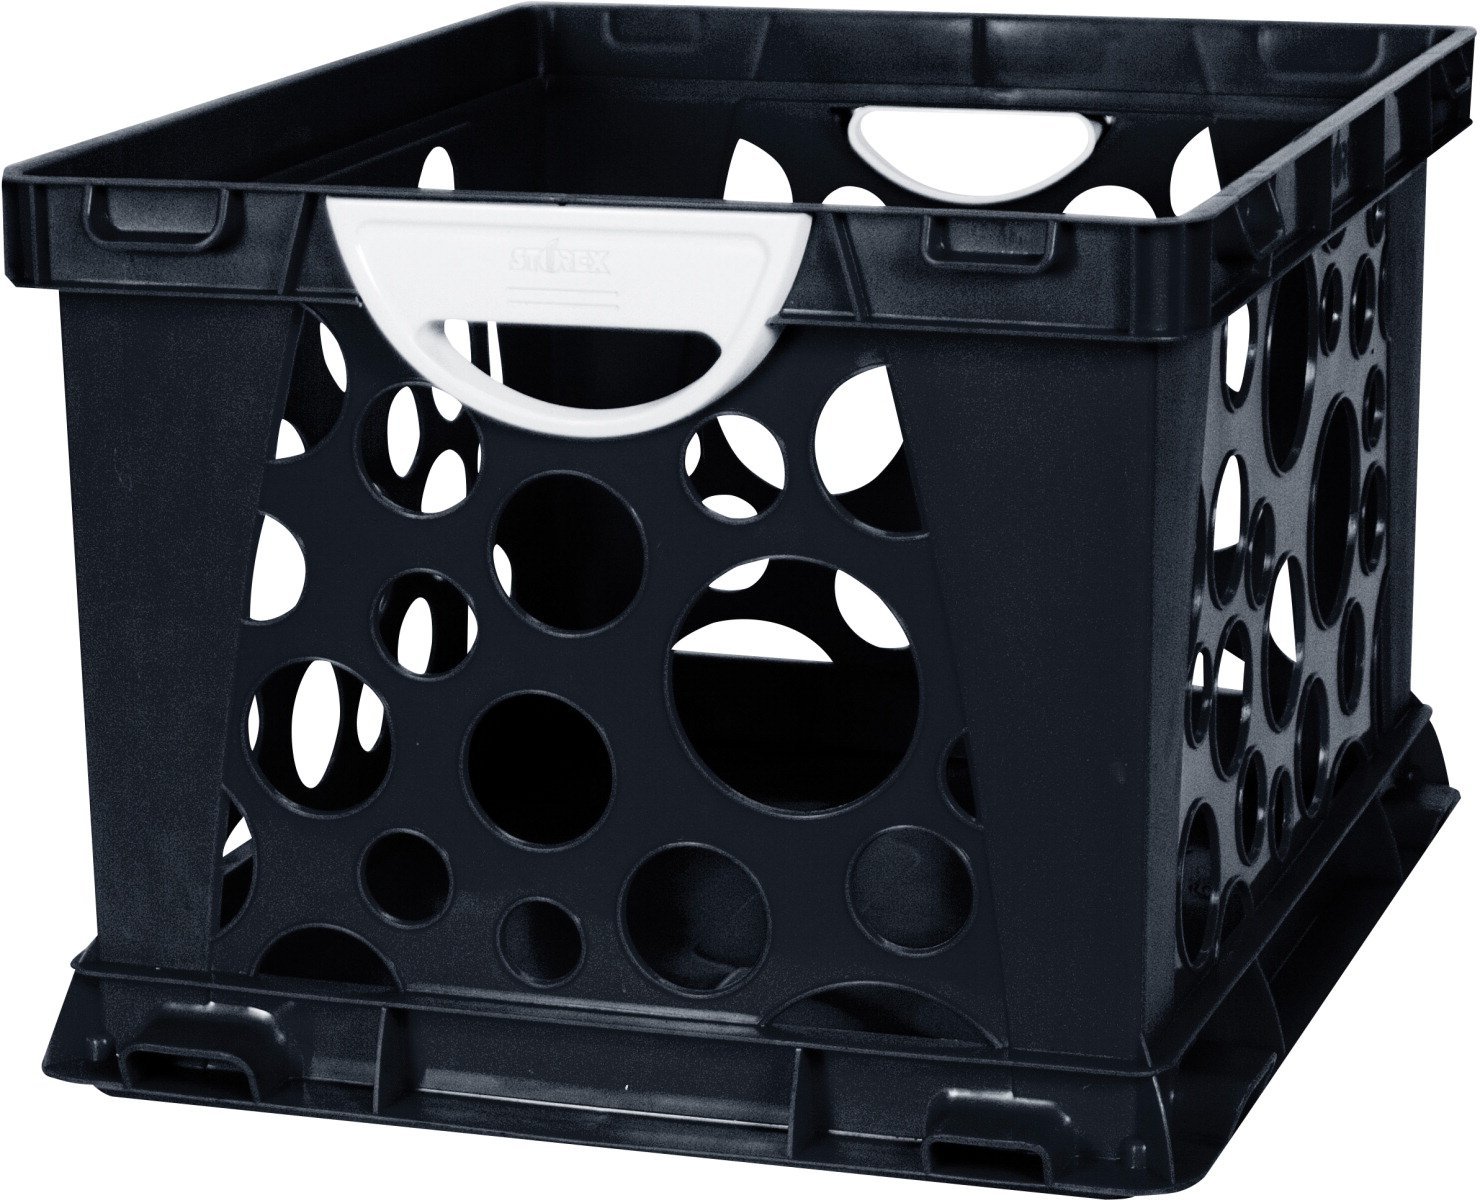 Storex 2-Color Large Crate with Handles, Black/White